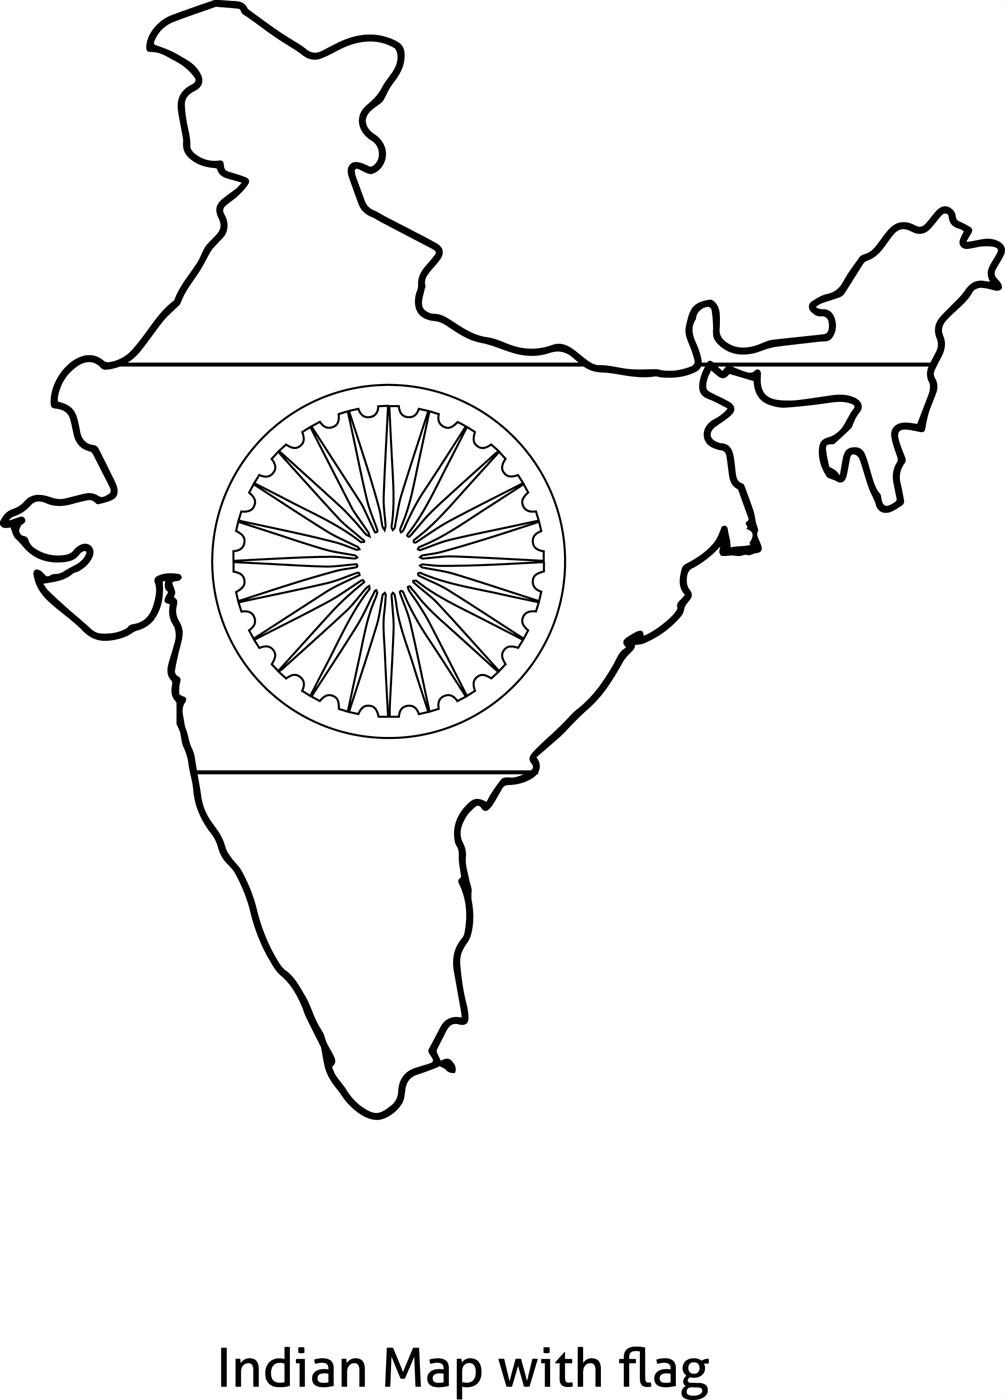 Coloring Pages About India